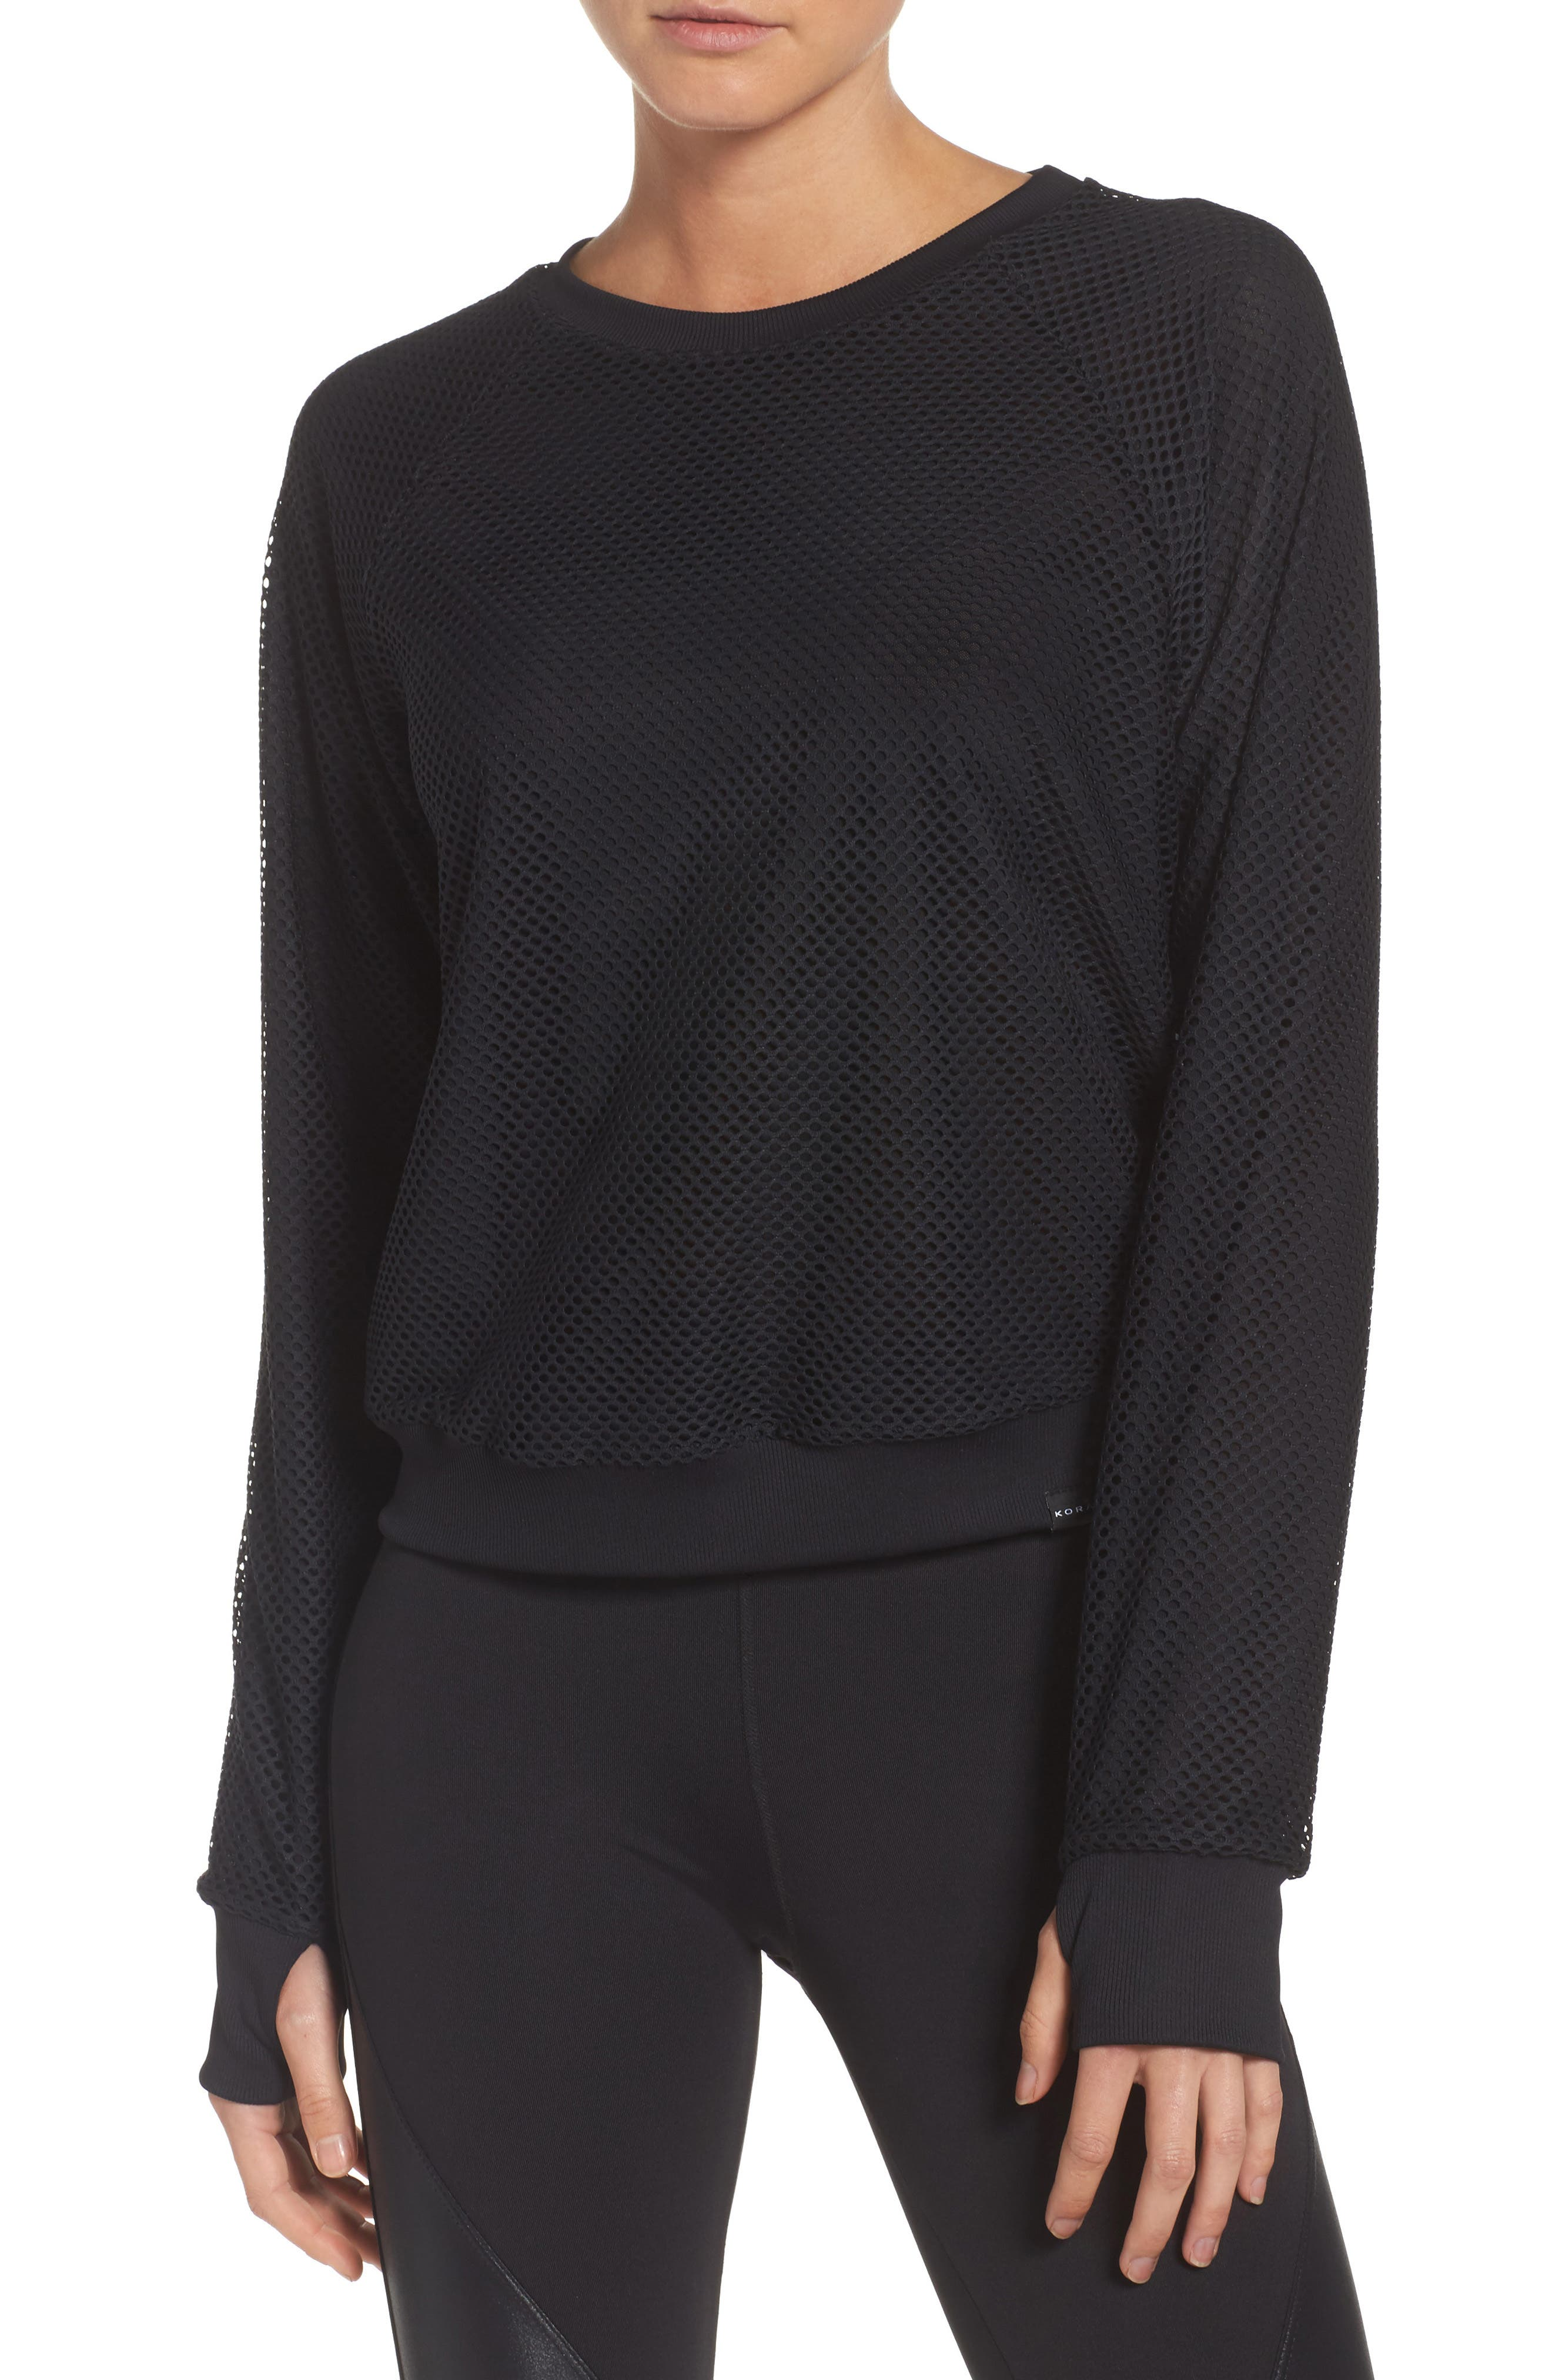 Main Image - Koral Sofia Crop Pullover